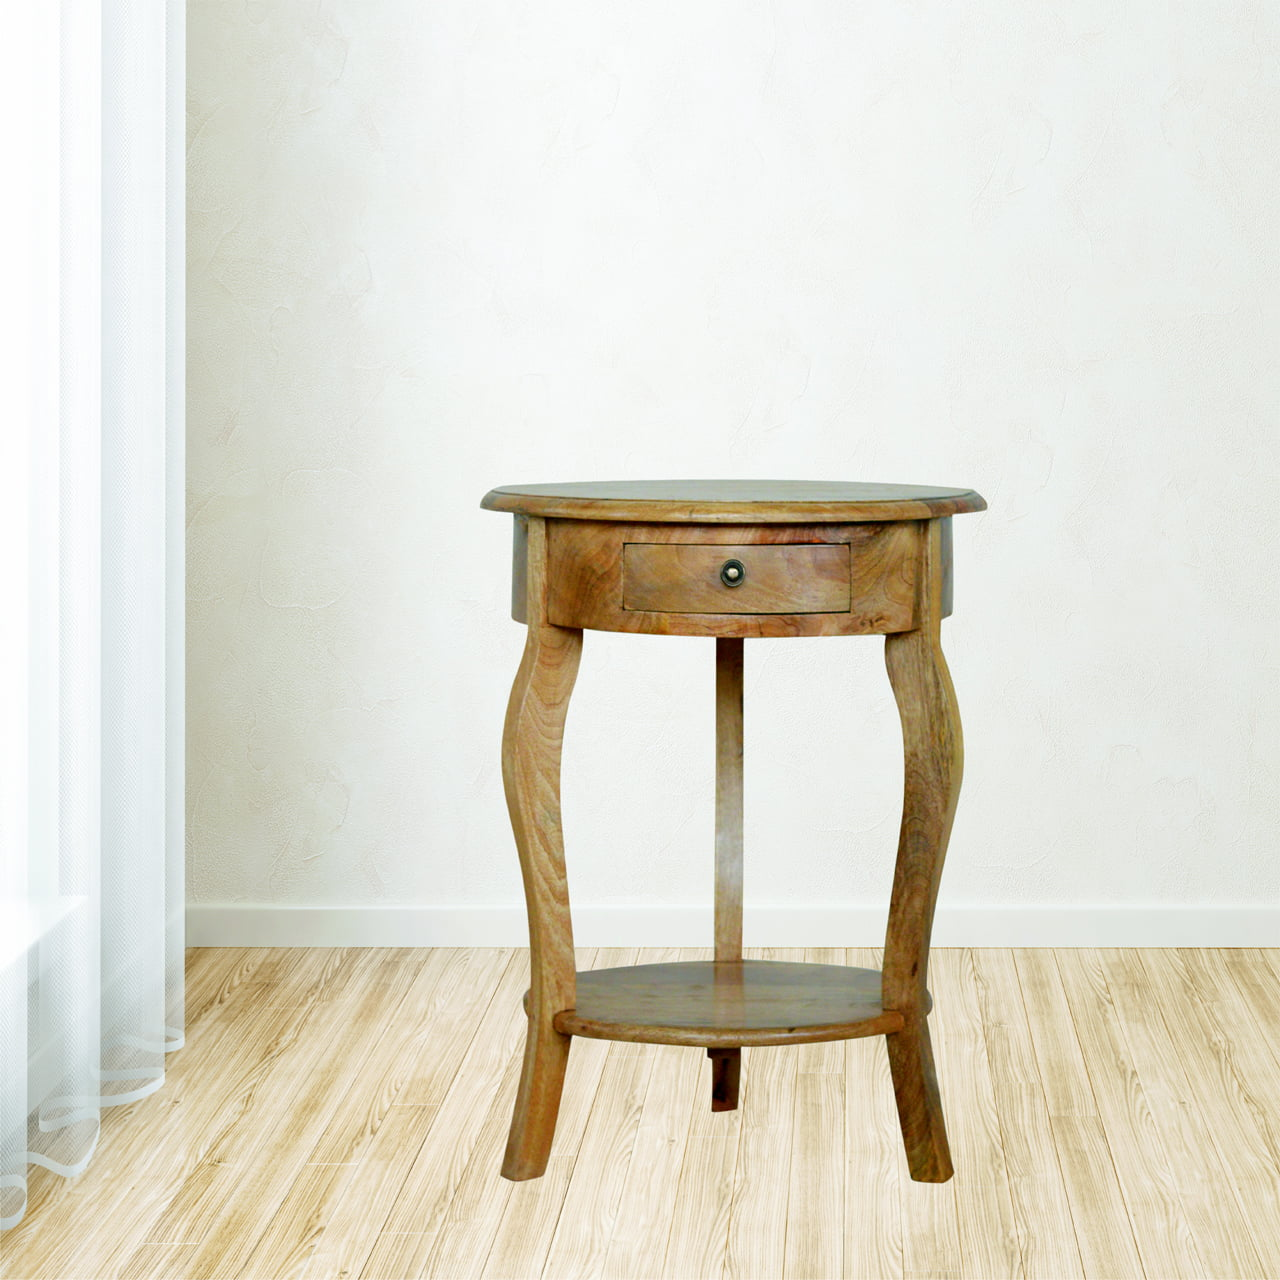 Groovy Solid Wood Breakfast Table With 2 Stools Machost Co Dining Chair Design Ideas Machostcouk